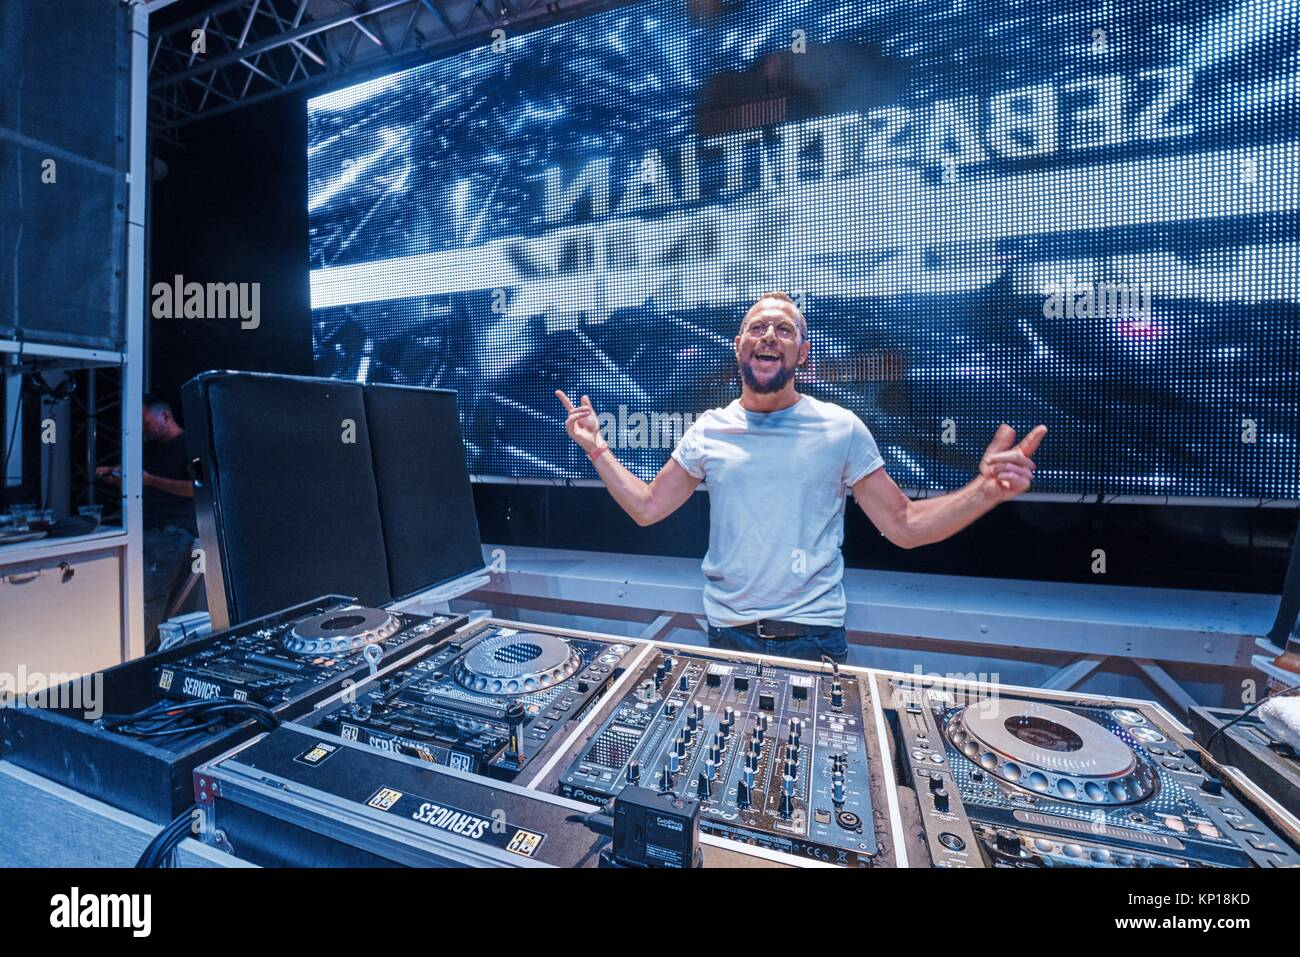 DJ Sebastian Bronk at music festival Starbeach Lovestar Neon in Hersonissos, Crete, Greece, on 23. August 2017 Stock Photo